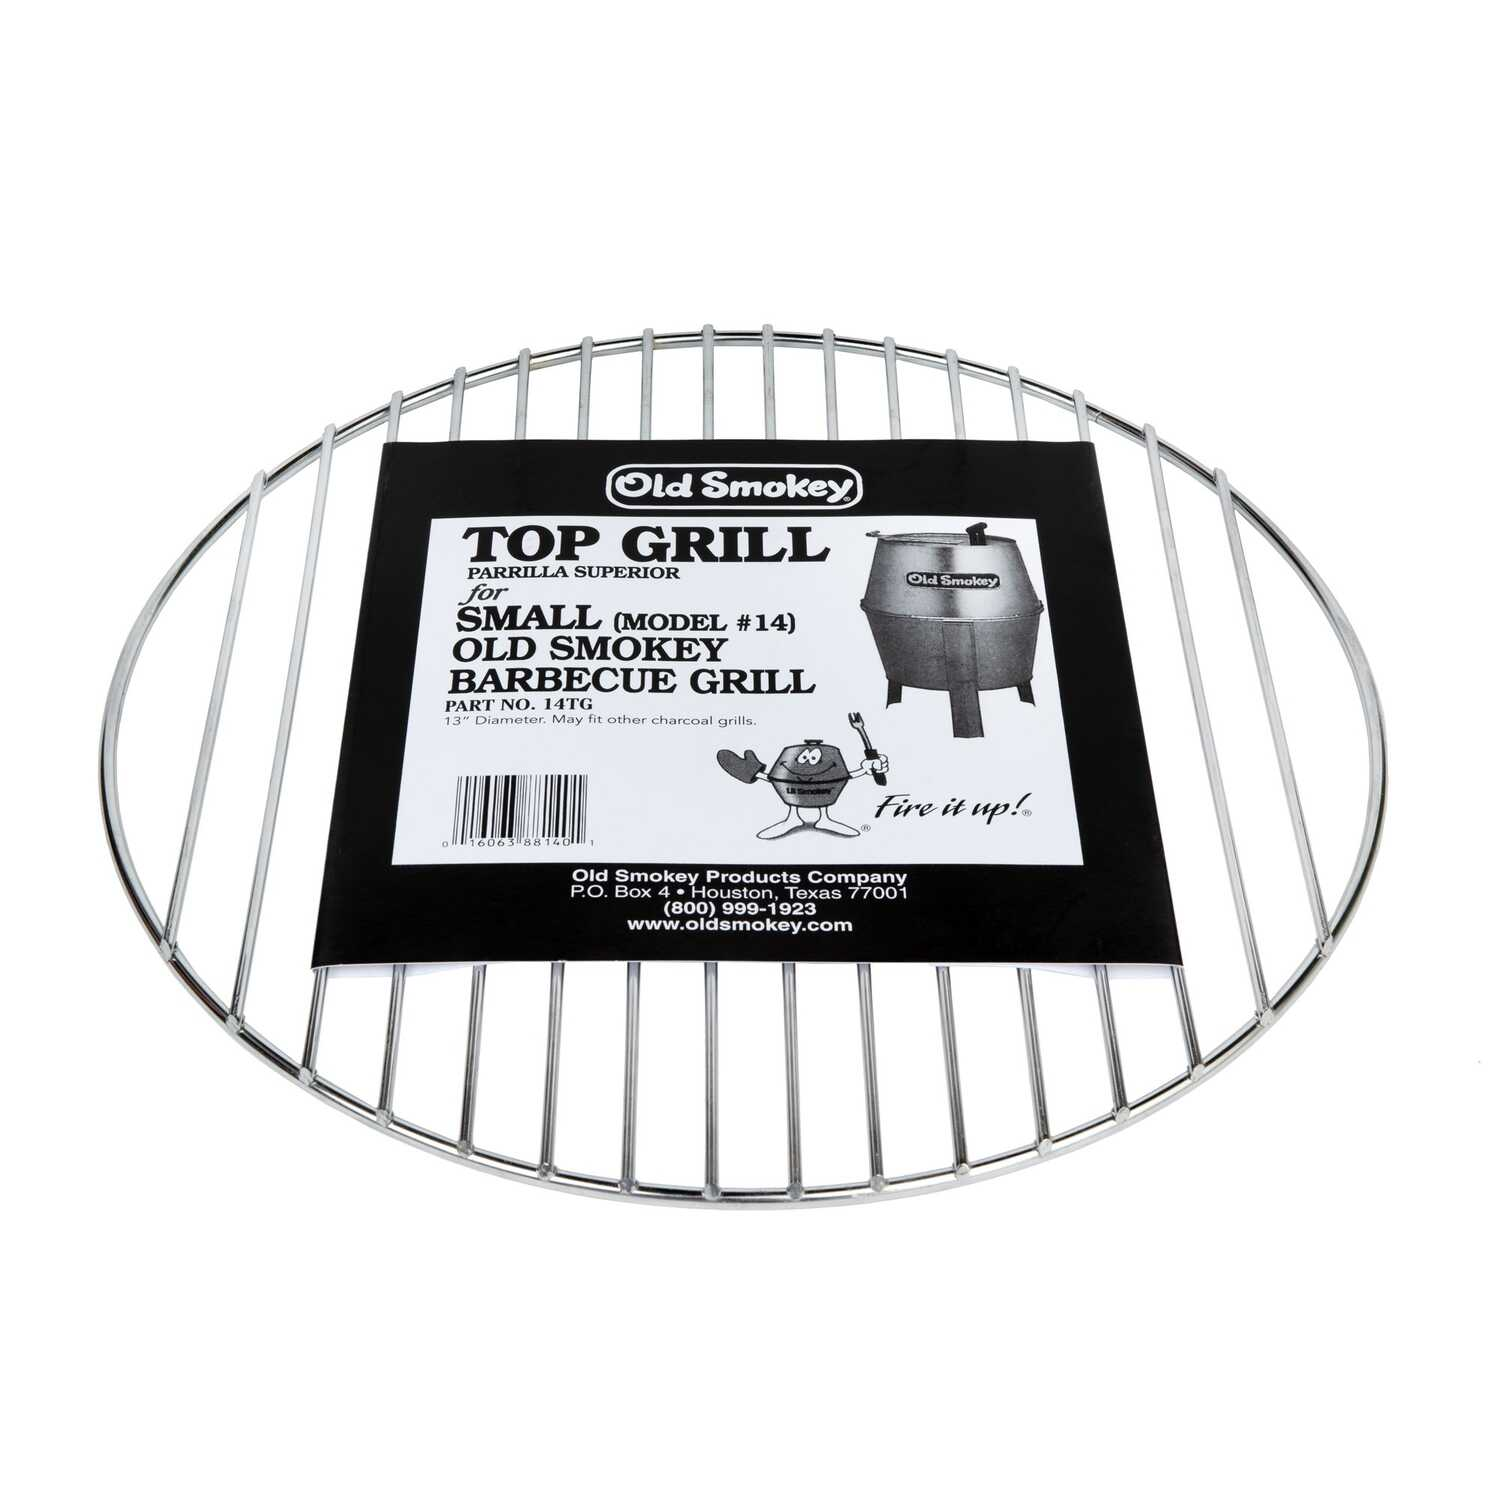 Old Smokey  Plated Steel  Grill Cooking Grate  0.5 in. H x 13 in. W x 13 in. L